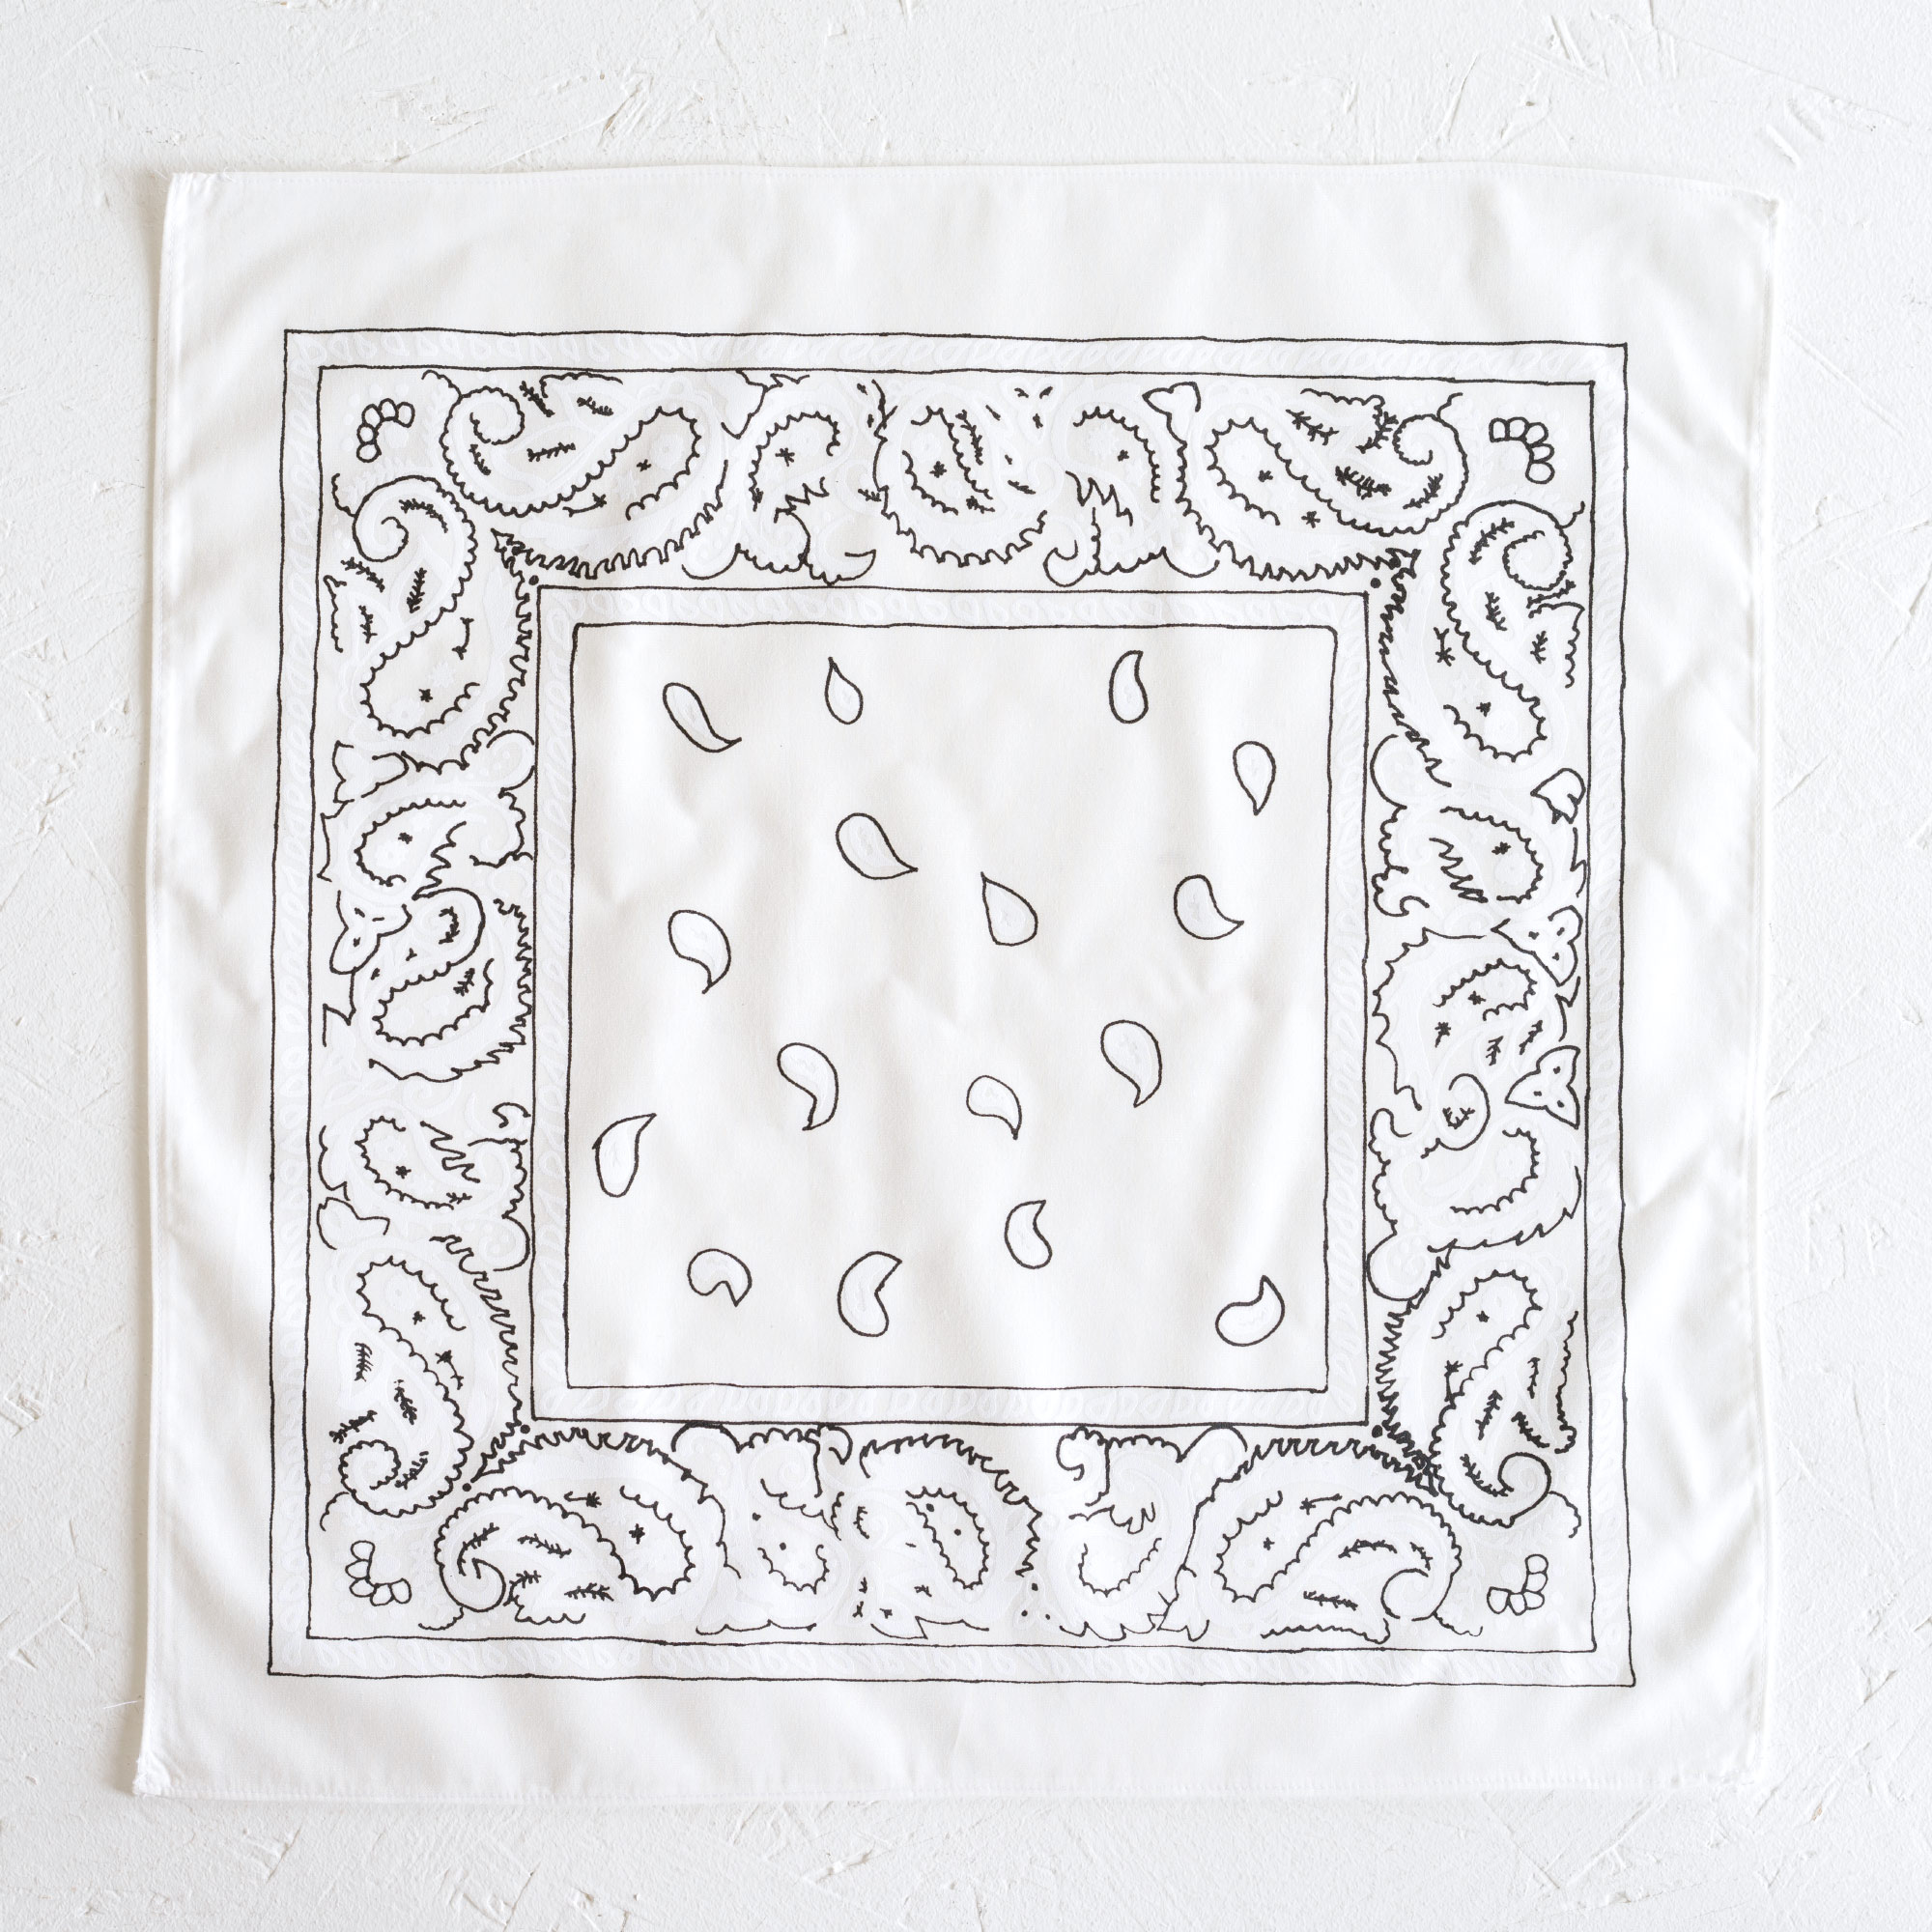 Nancy Davidson, *Hanky Code* (White), 2016, Two color silkscreen on hand cut & sewn cotton, 17 x 17 inches (43.18 x 43.18 cm)